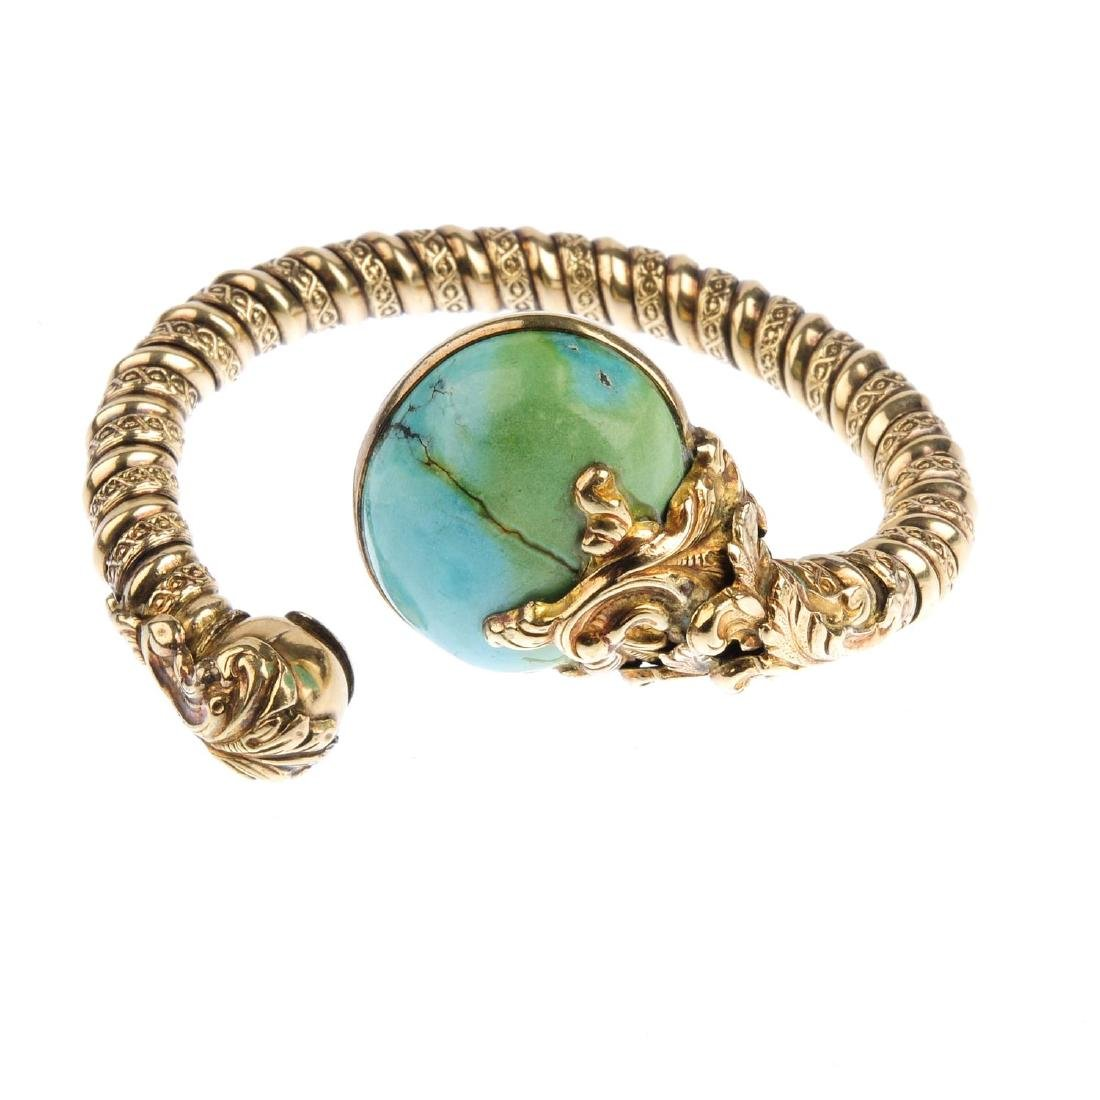 A turquoise cuff. The textured cuff, with oval